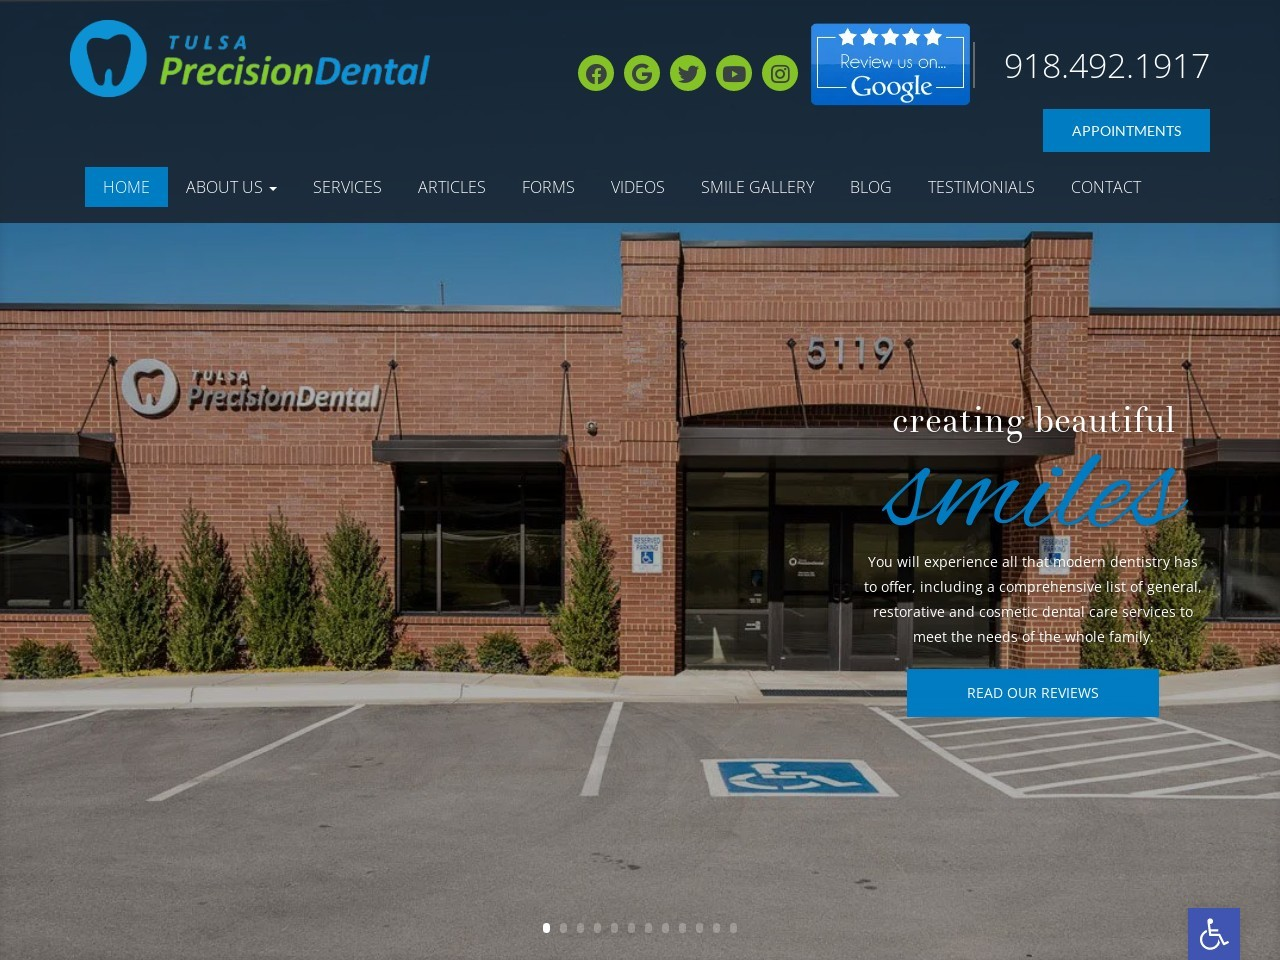 tulsaprecisiondental.com screenshot